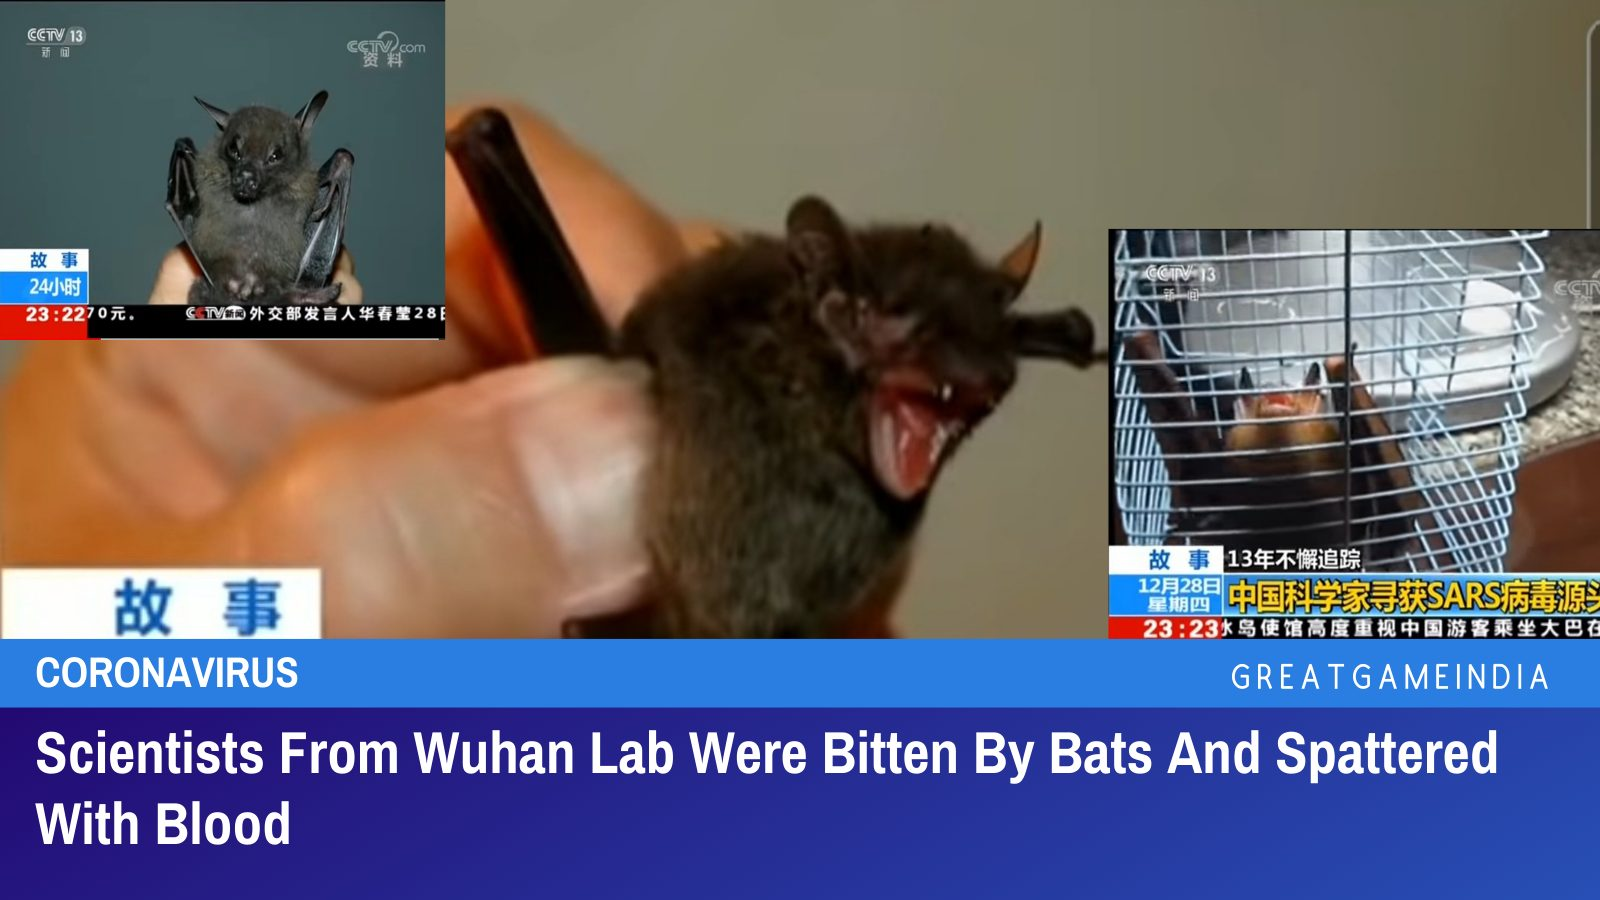 Scientists Experimenting COVID-19 Virus At Wuhan Lab Were Bitten By Bats And Spattered With Blood